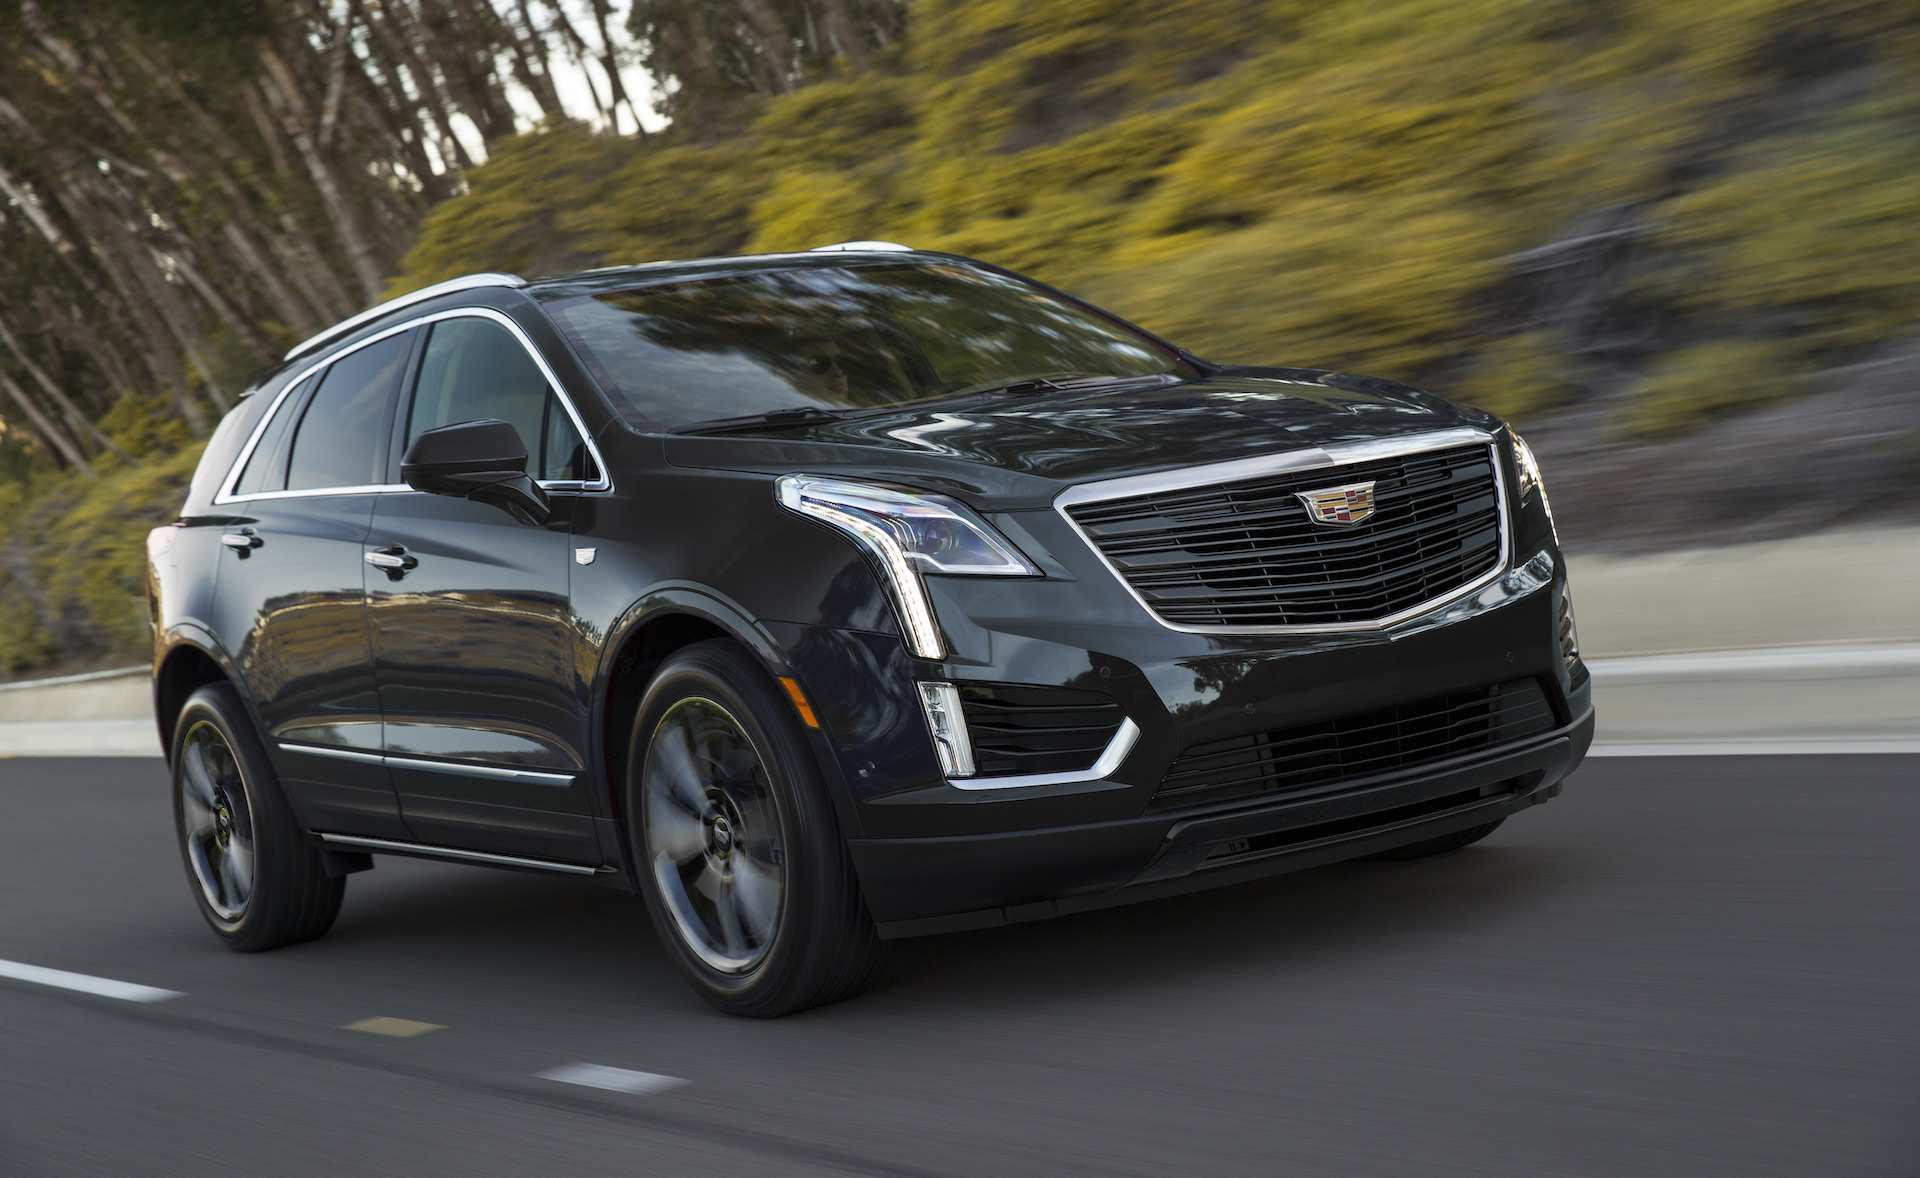 83 Best Review The 2019 Cadillac Xt5 Used Concept Pictures for The 2019 Cadillac Xt5 Used Concept